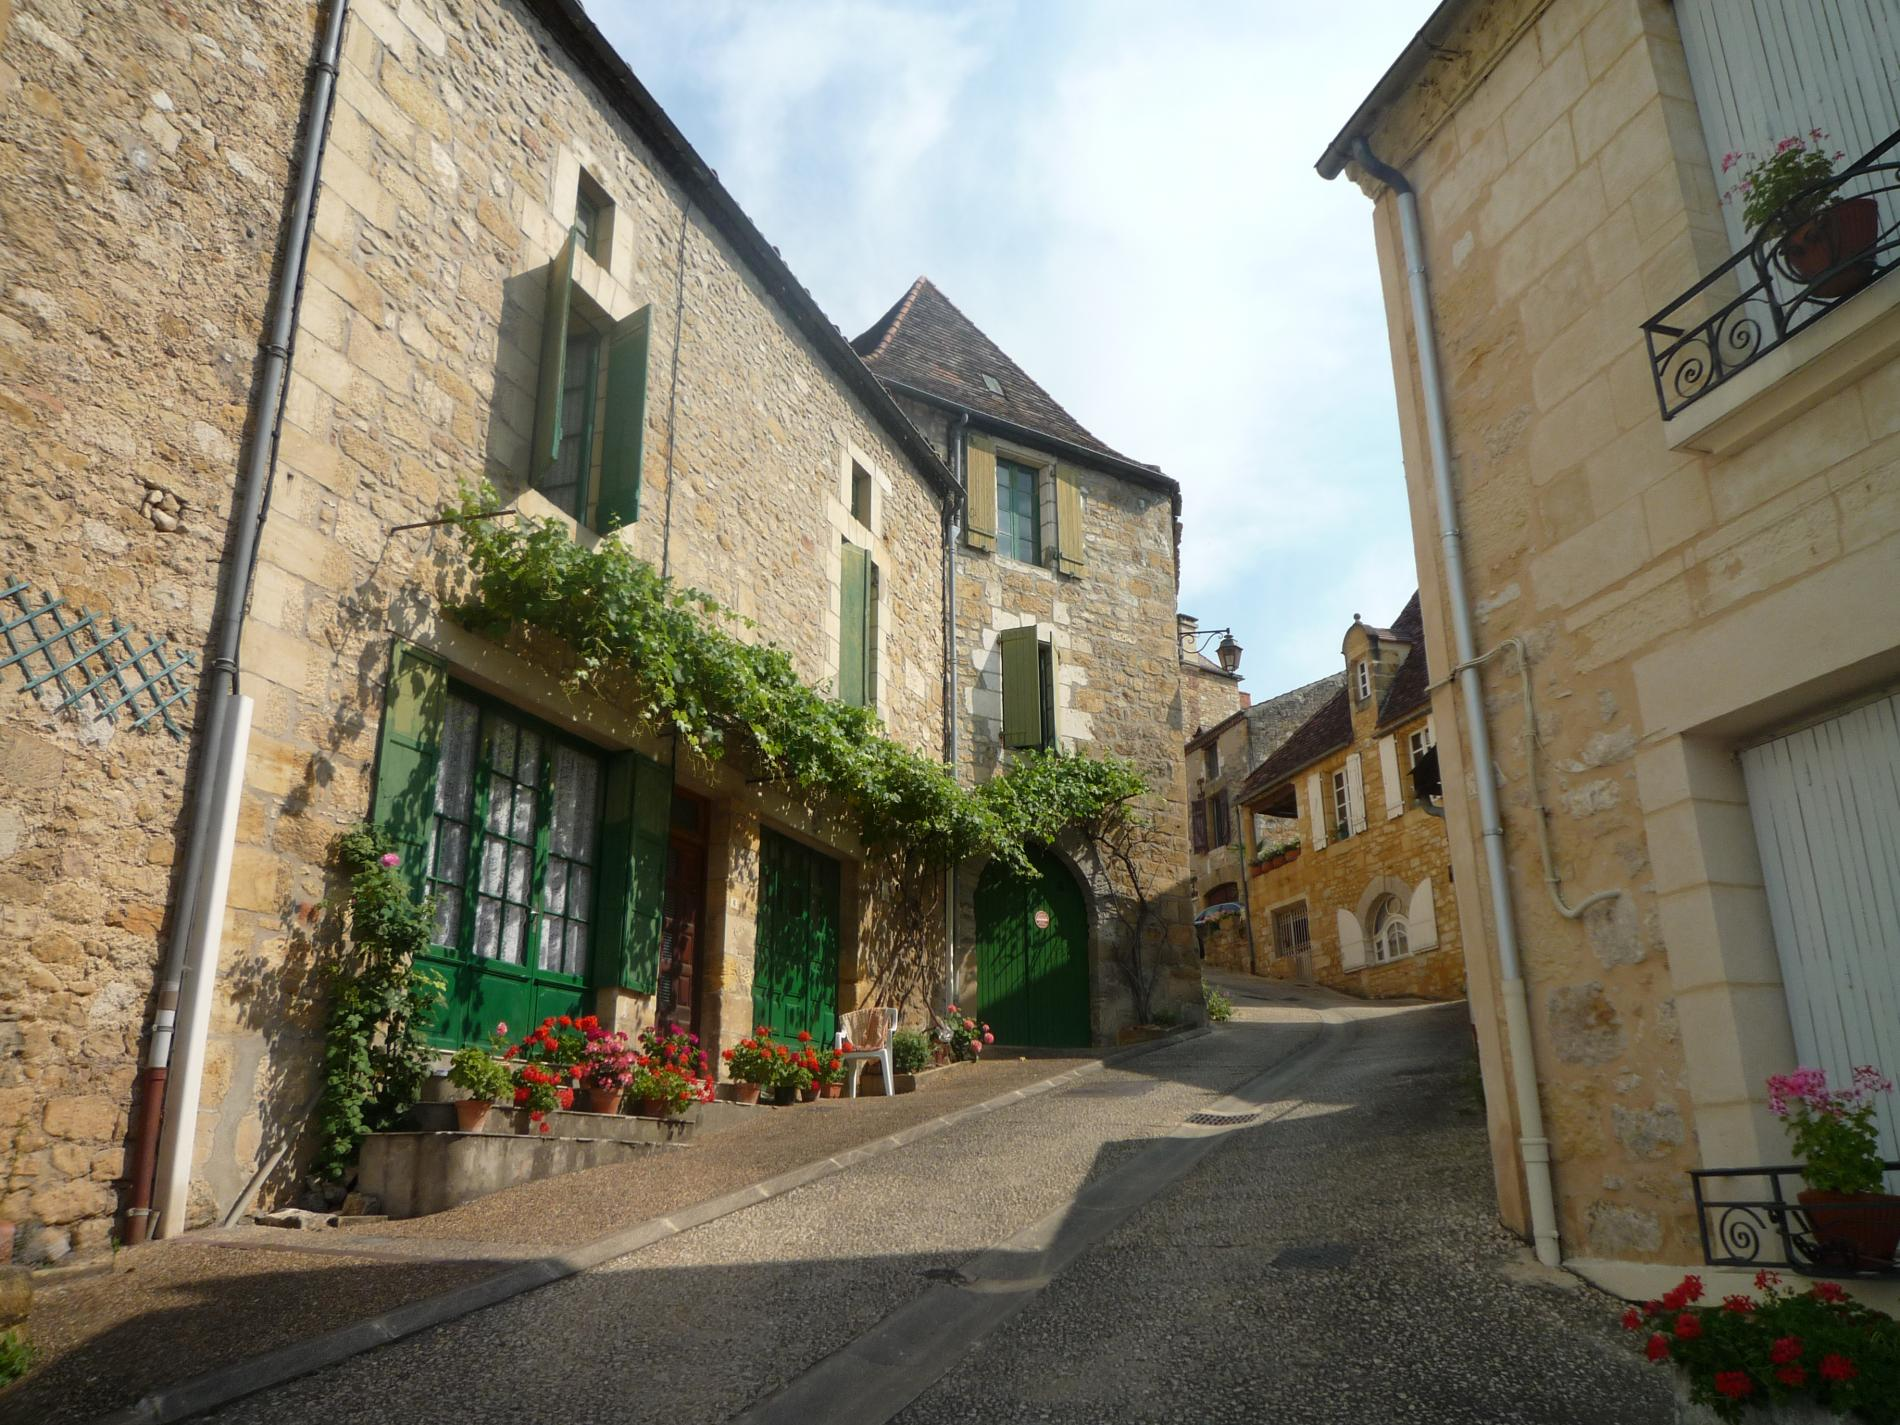 Alley of the Village of St Cyprien